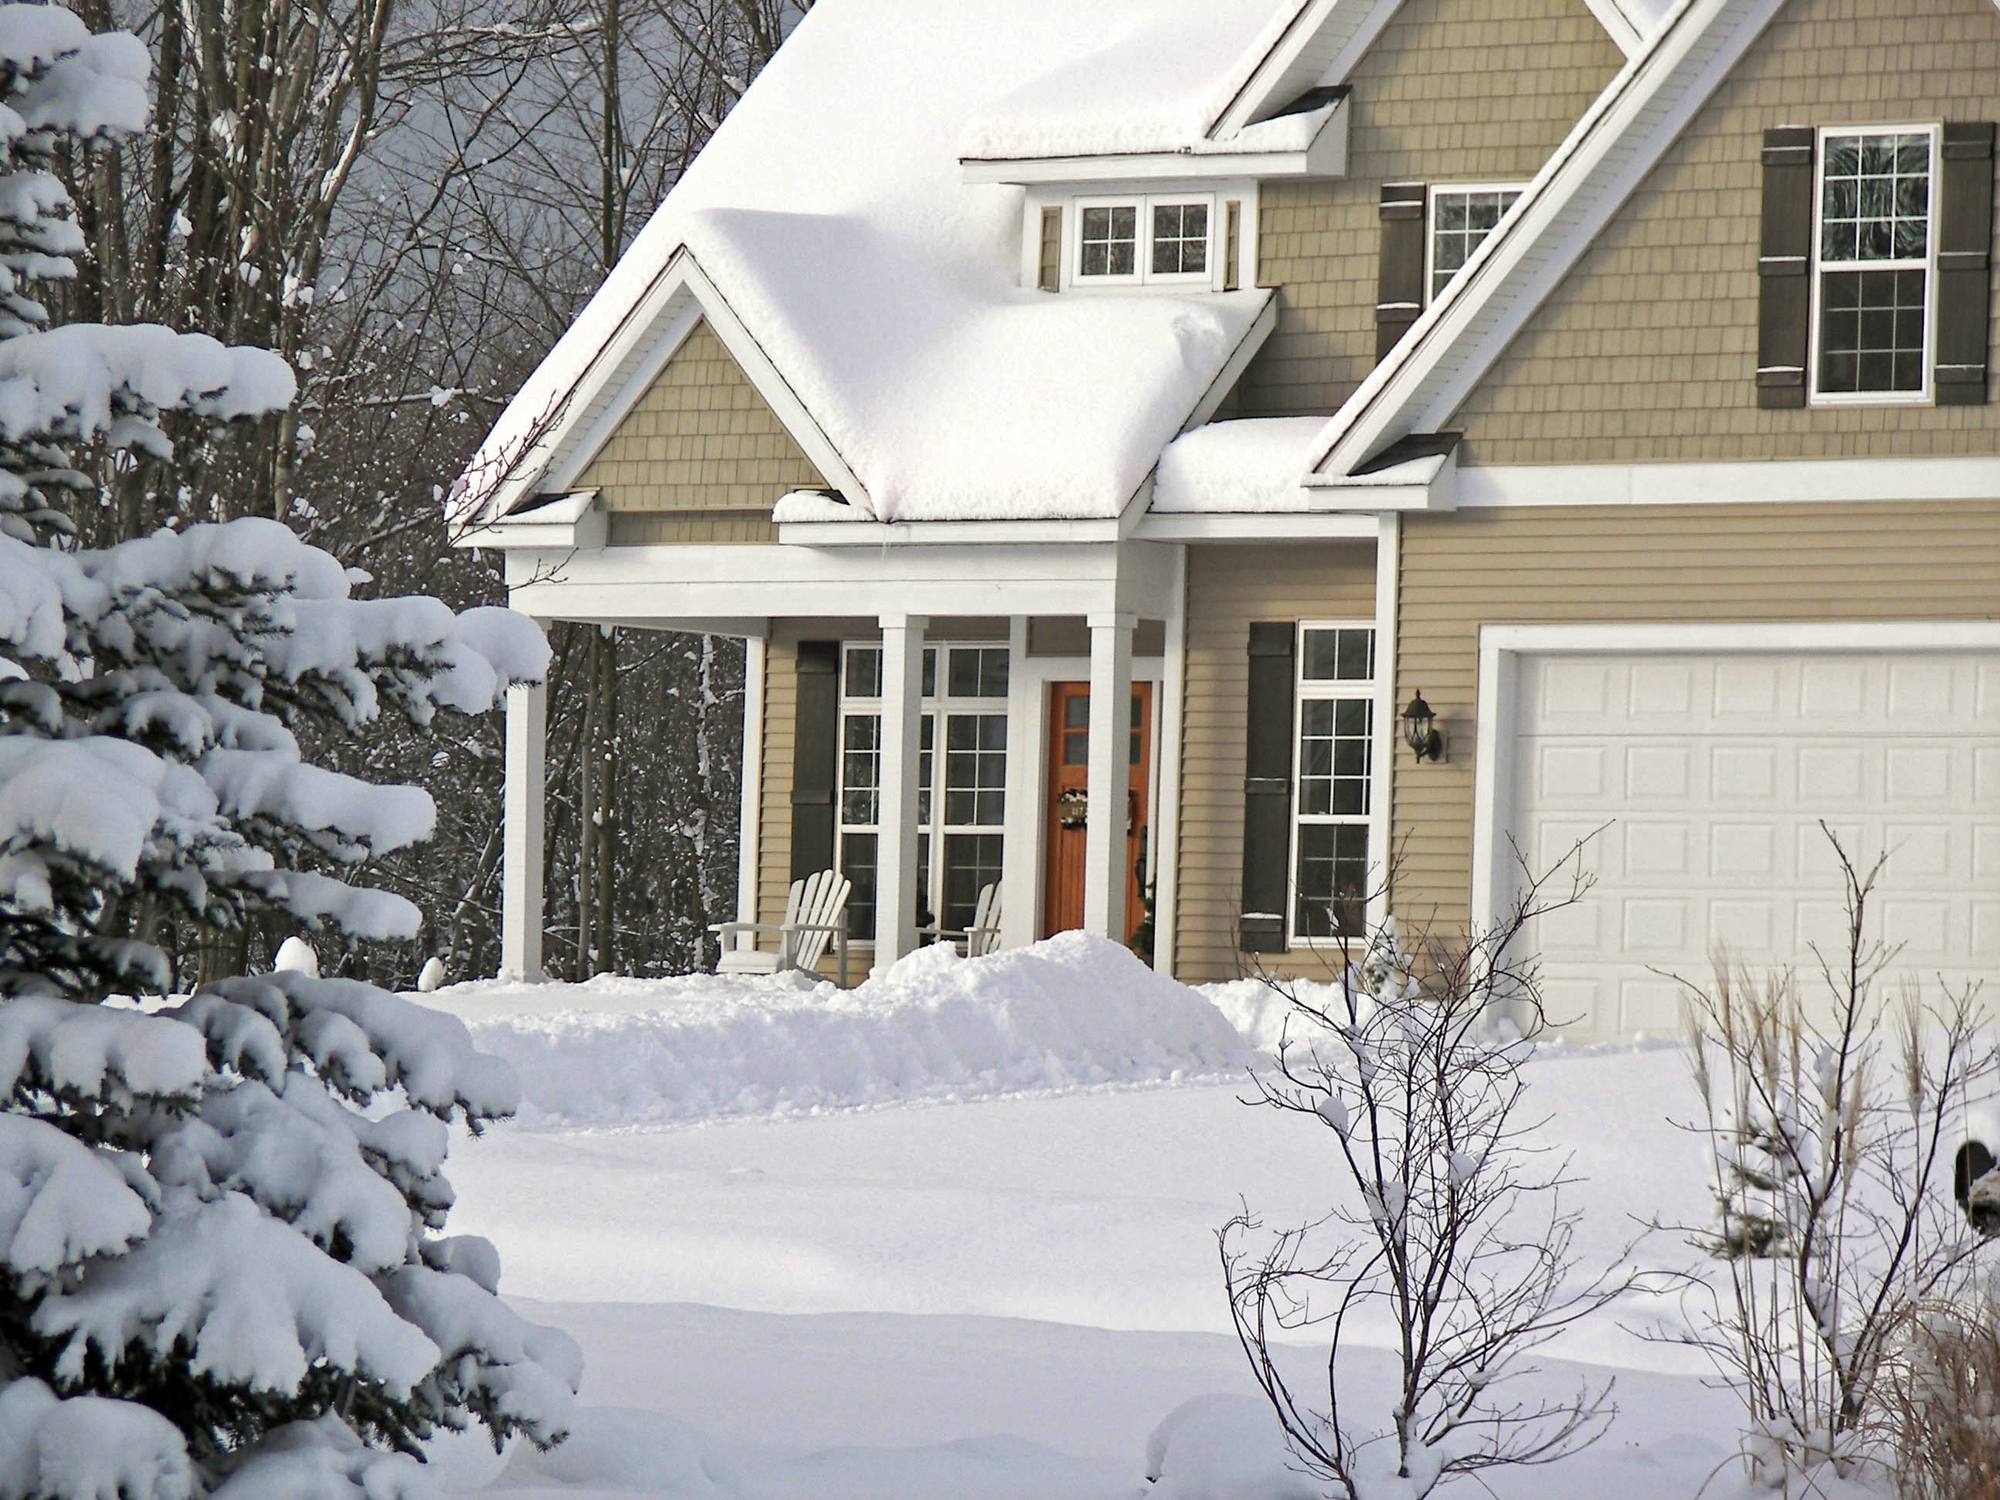 How Weather Damage Can Impact Your Home